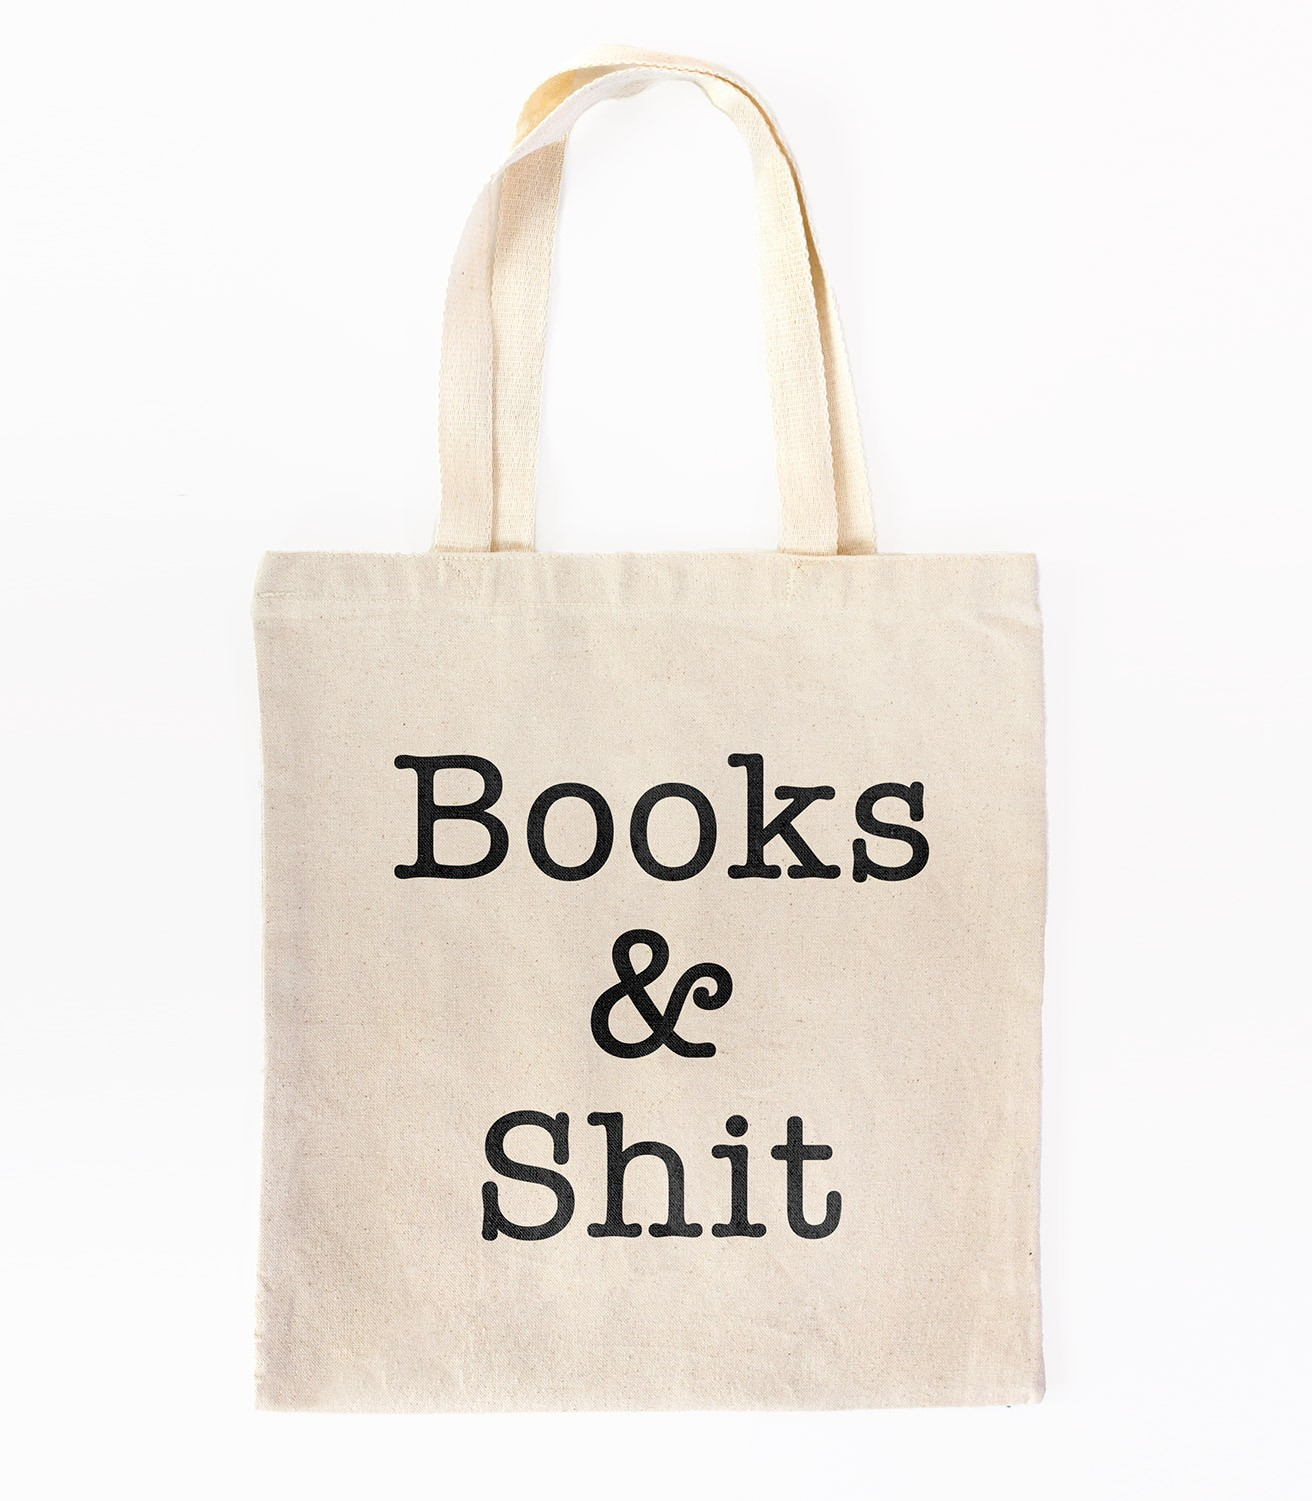 Books Sht Tote Bag